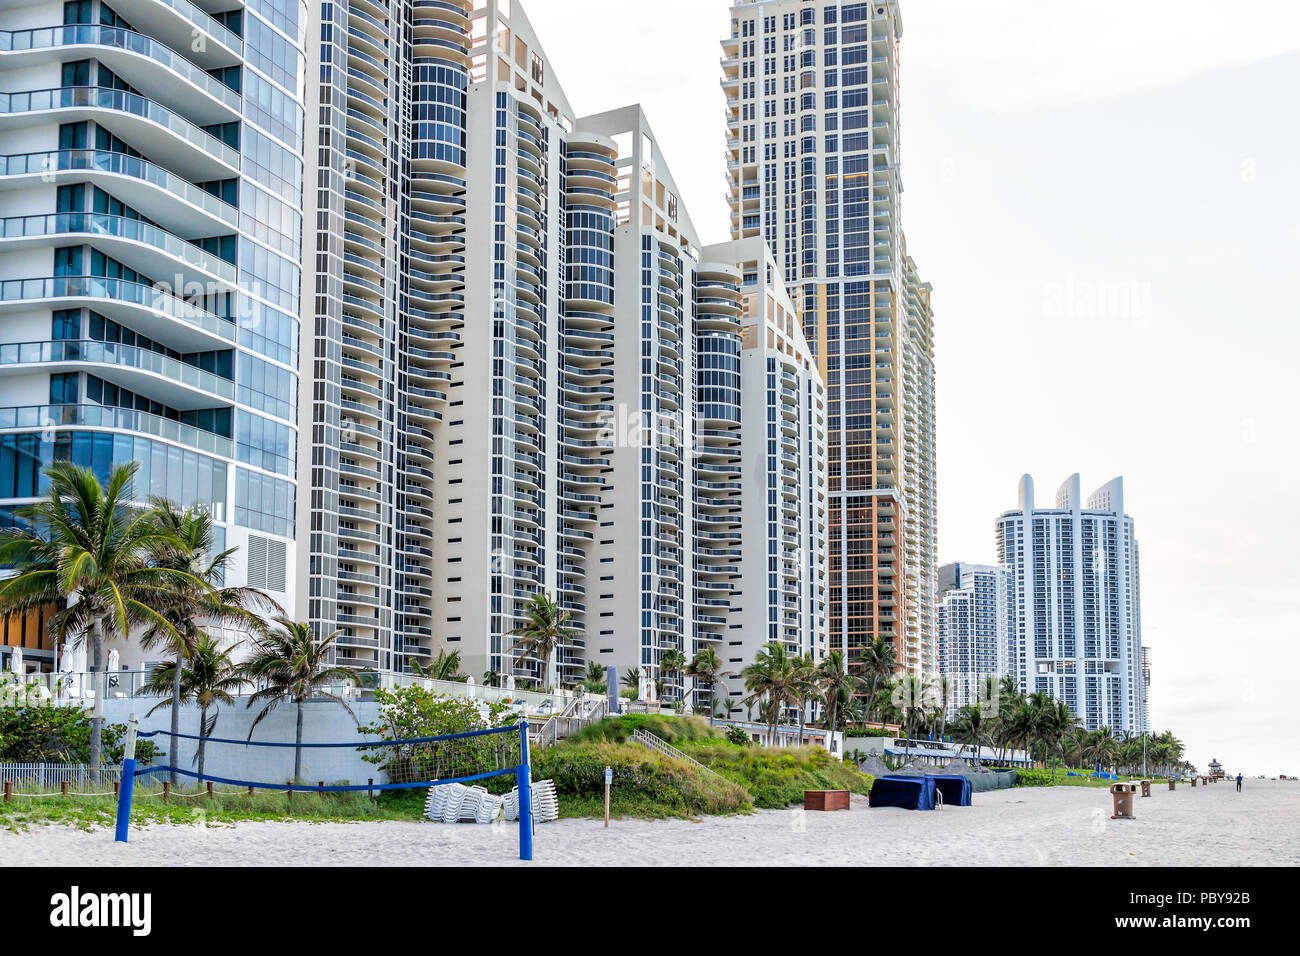 Sunny Isles Beach, USA - May 7, 2018: Apartment condo hotel Pinnacle building balconies during sunny day in Miami, Florida with skyscrapers urban sand - Stock Image